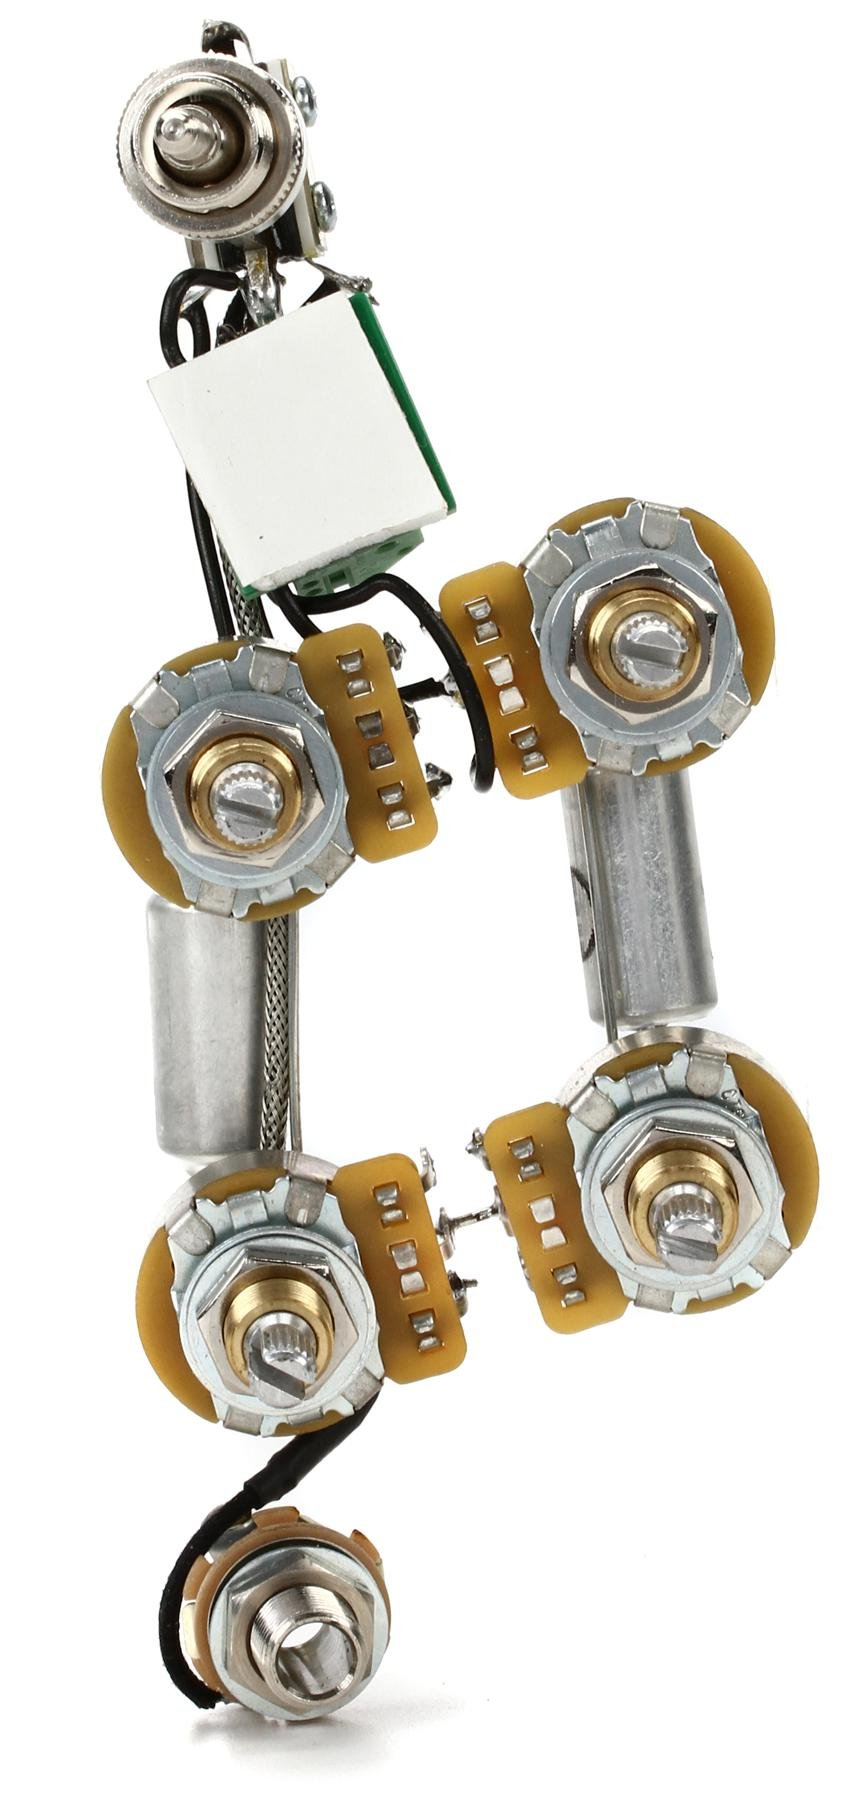 Mojo Tone Solderless Sg Wiring Harness Sweetwater Equipment Image 1